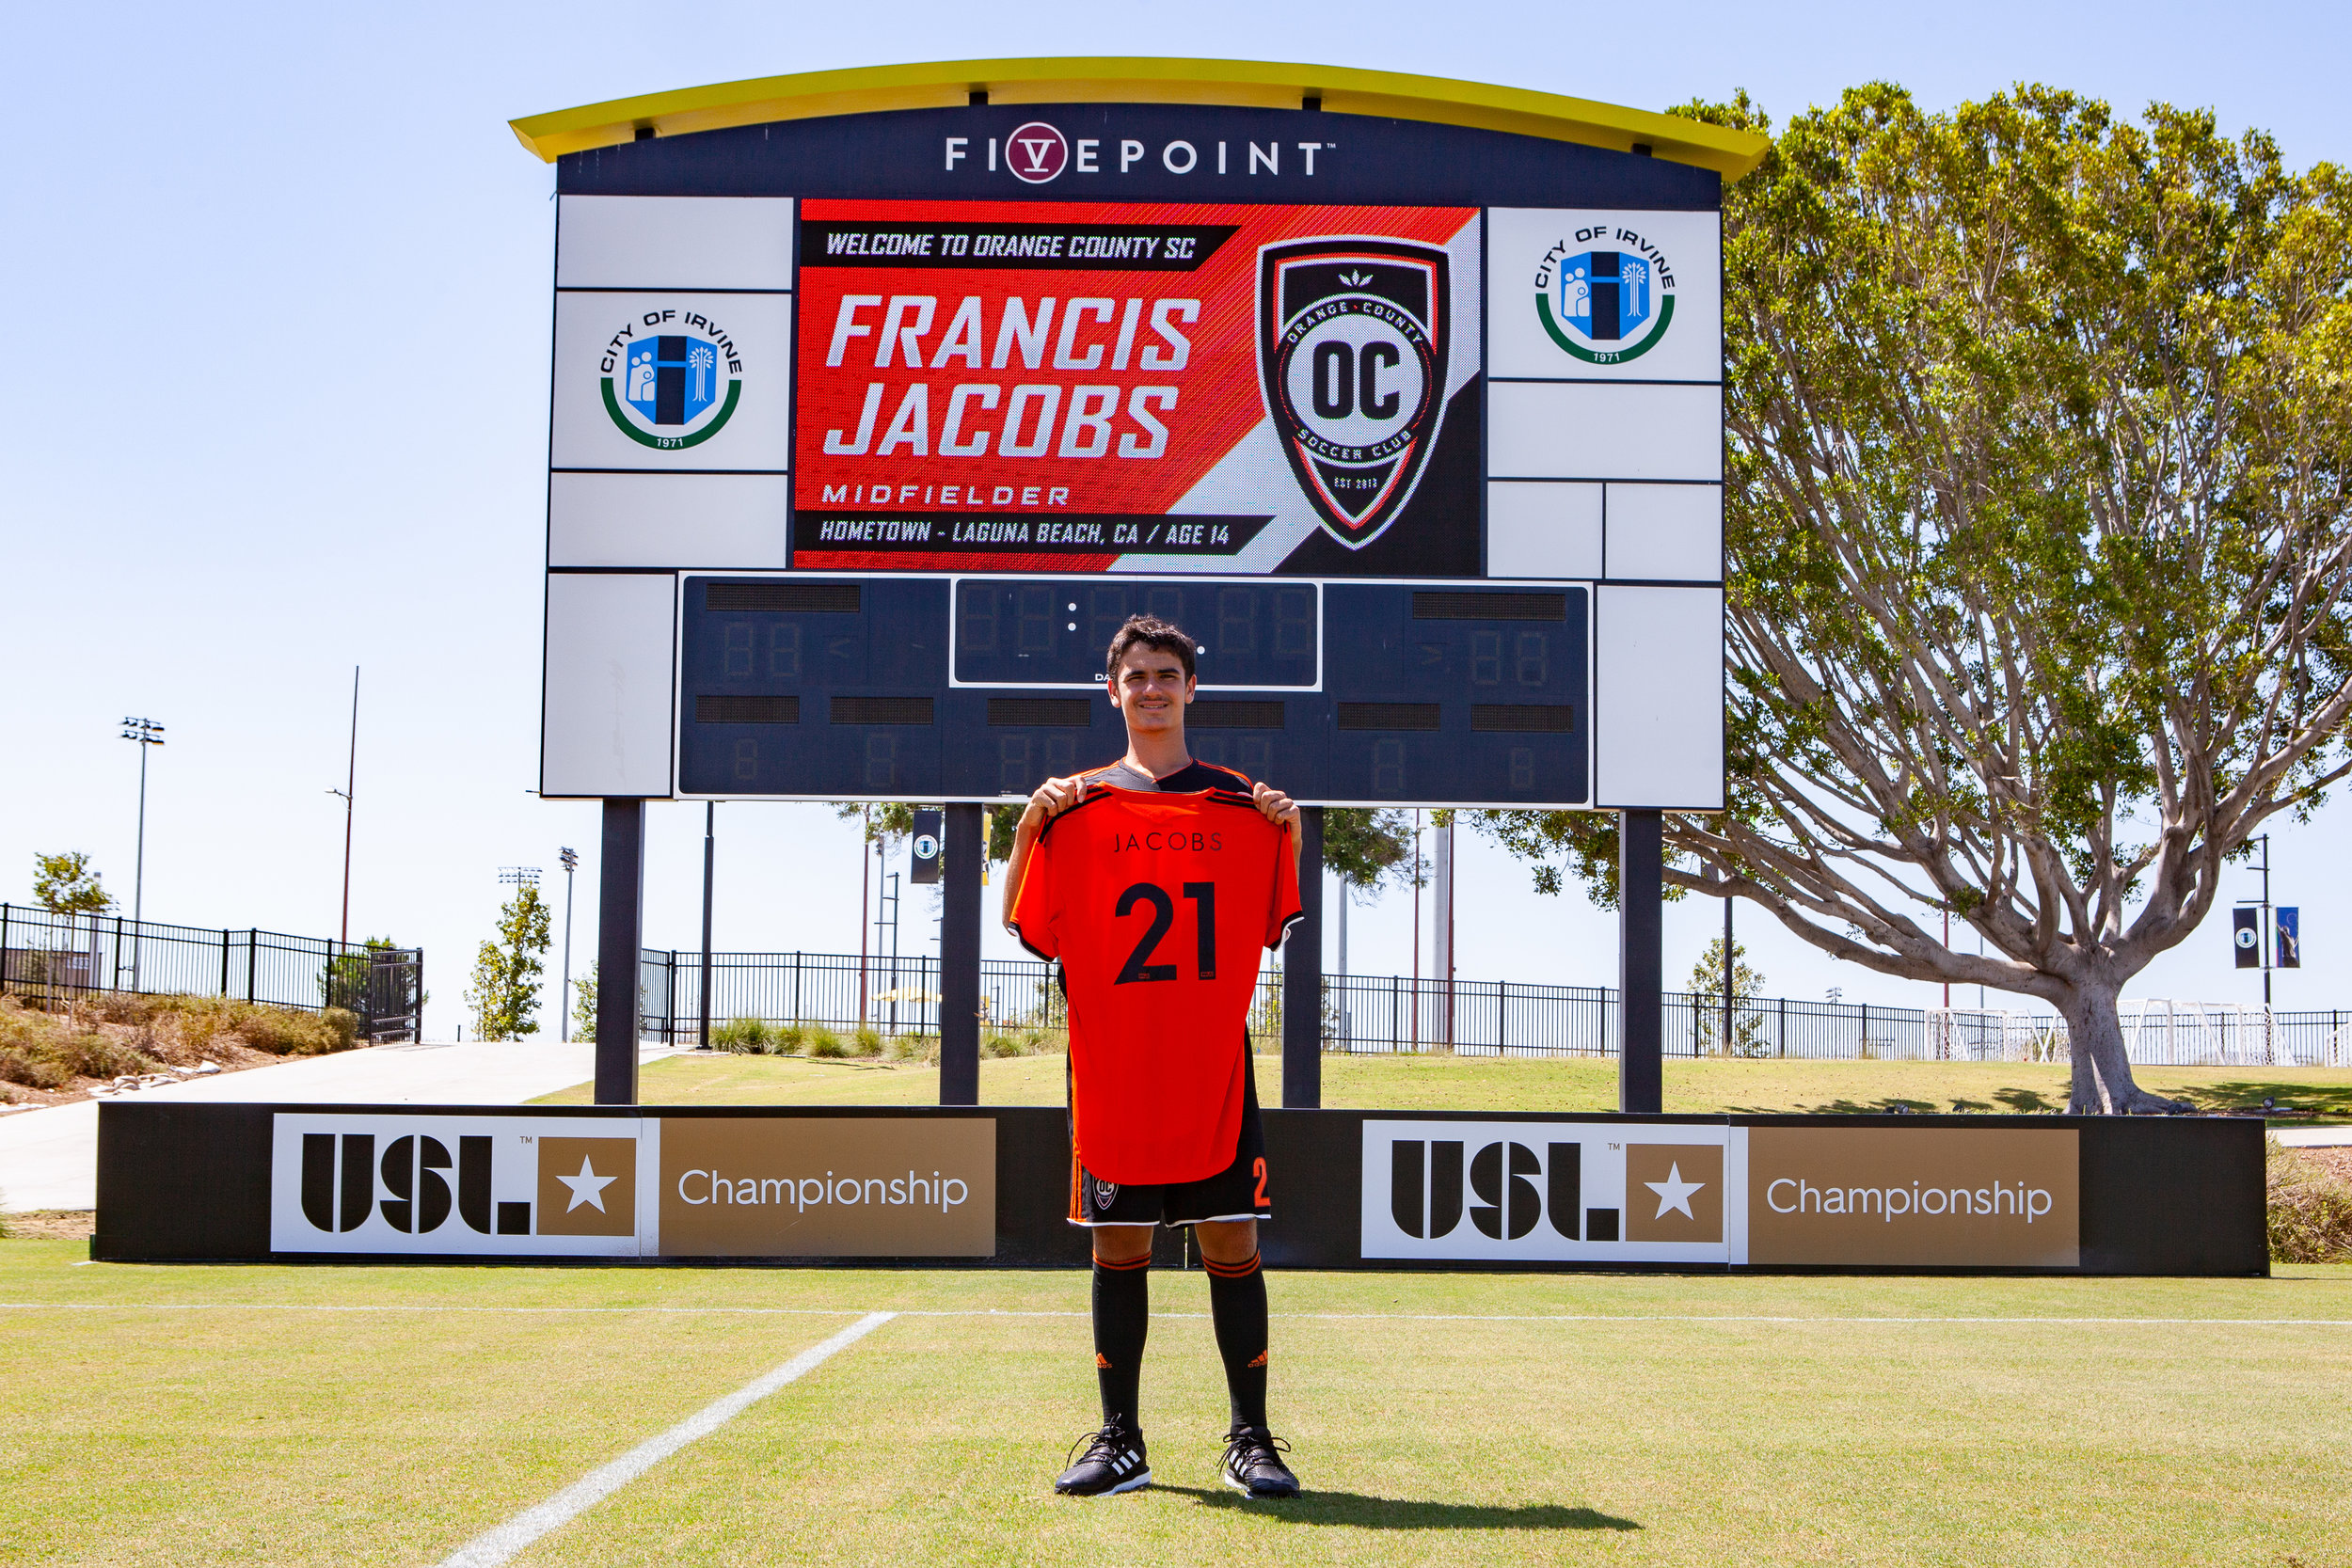 Newest Orange County SC midfielder Francis Jacobs shows off his number 21 jersey at his new home, Championship Soccer Stadium.  |   Photo courtesy of Orange County SC/Liza Rosales